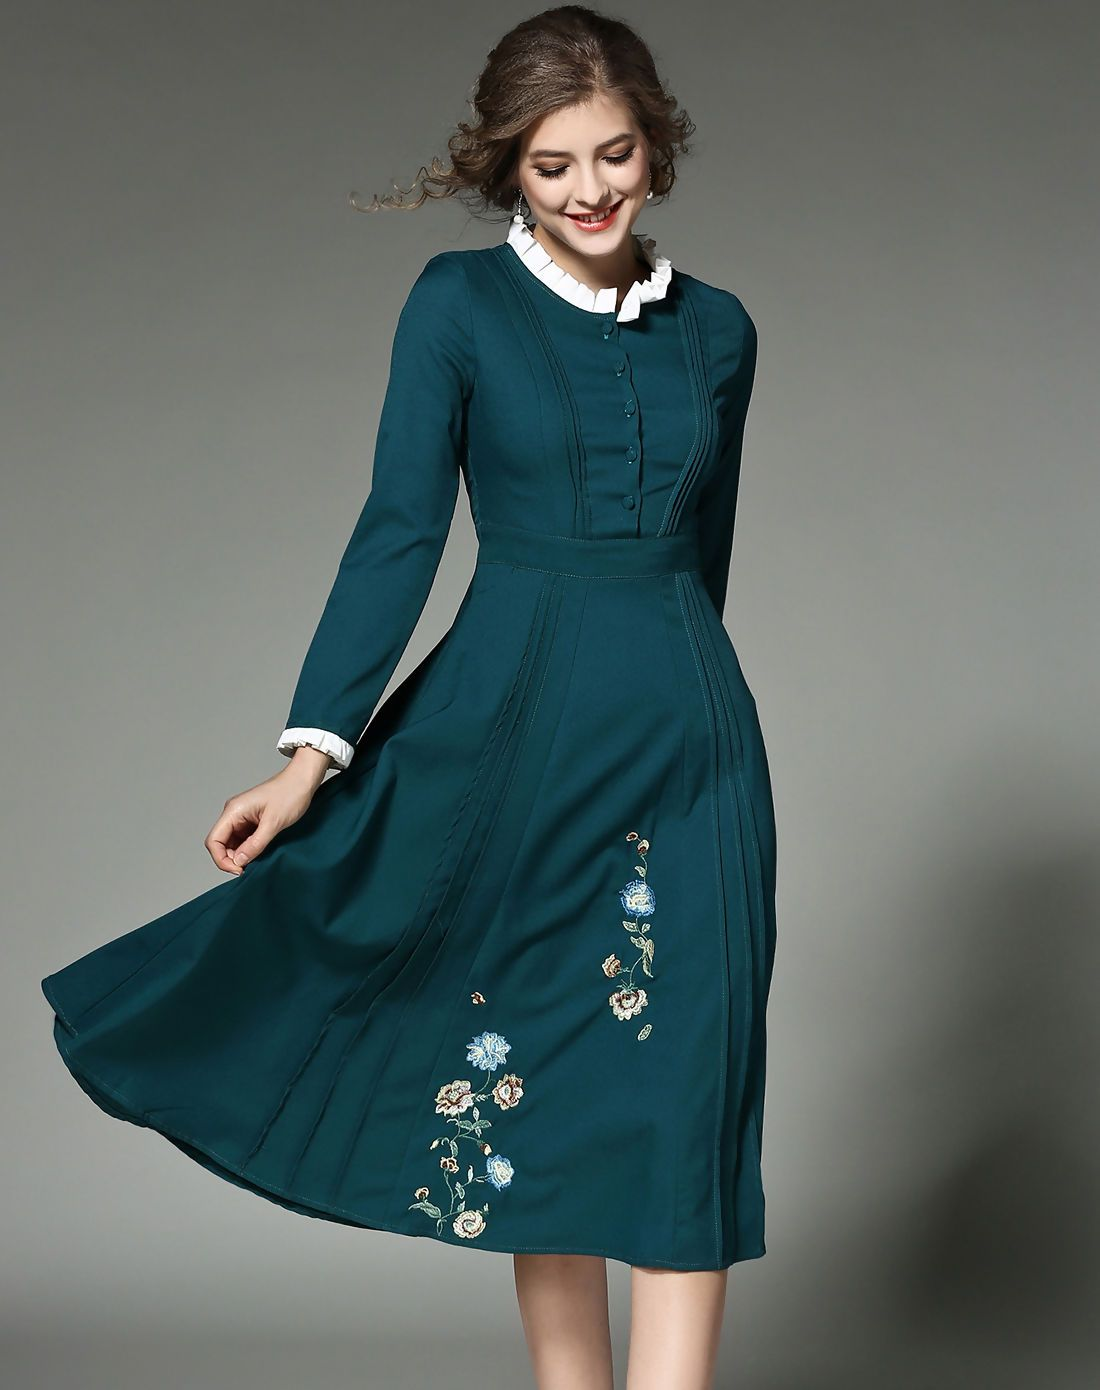 VIPme Cyan Stand Collar Floral Embroidered A Line Midi Dress ❤ Get ...